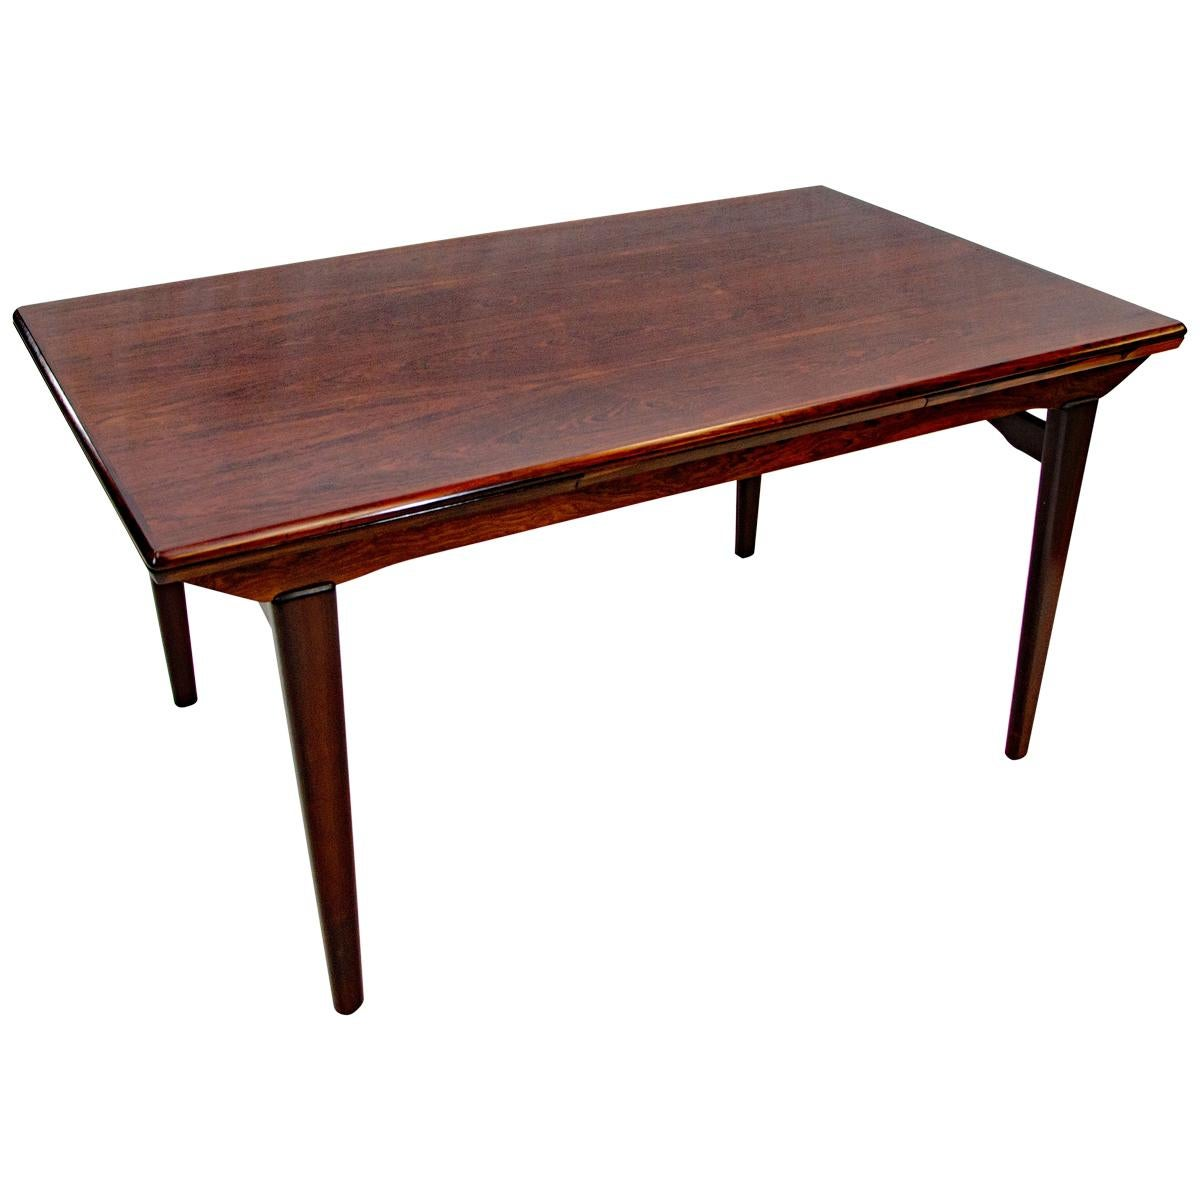 Rosewood Dining Table with Two Draw Leaves, N. O. Møller